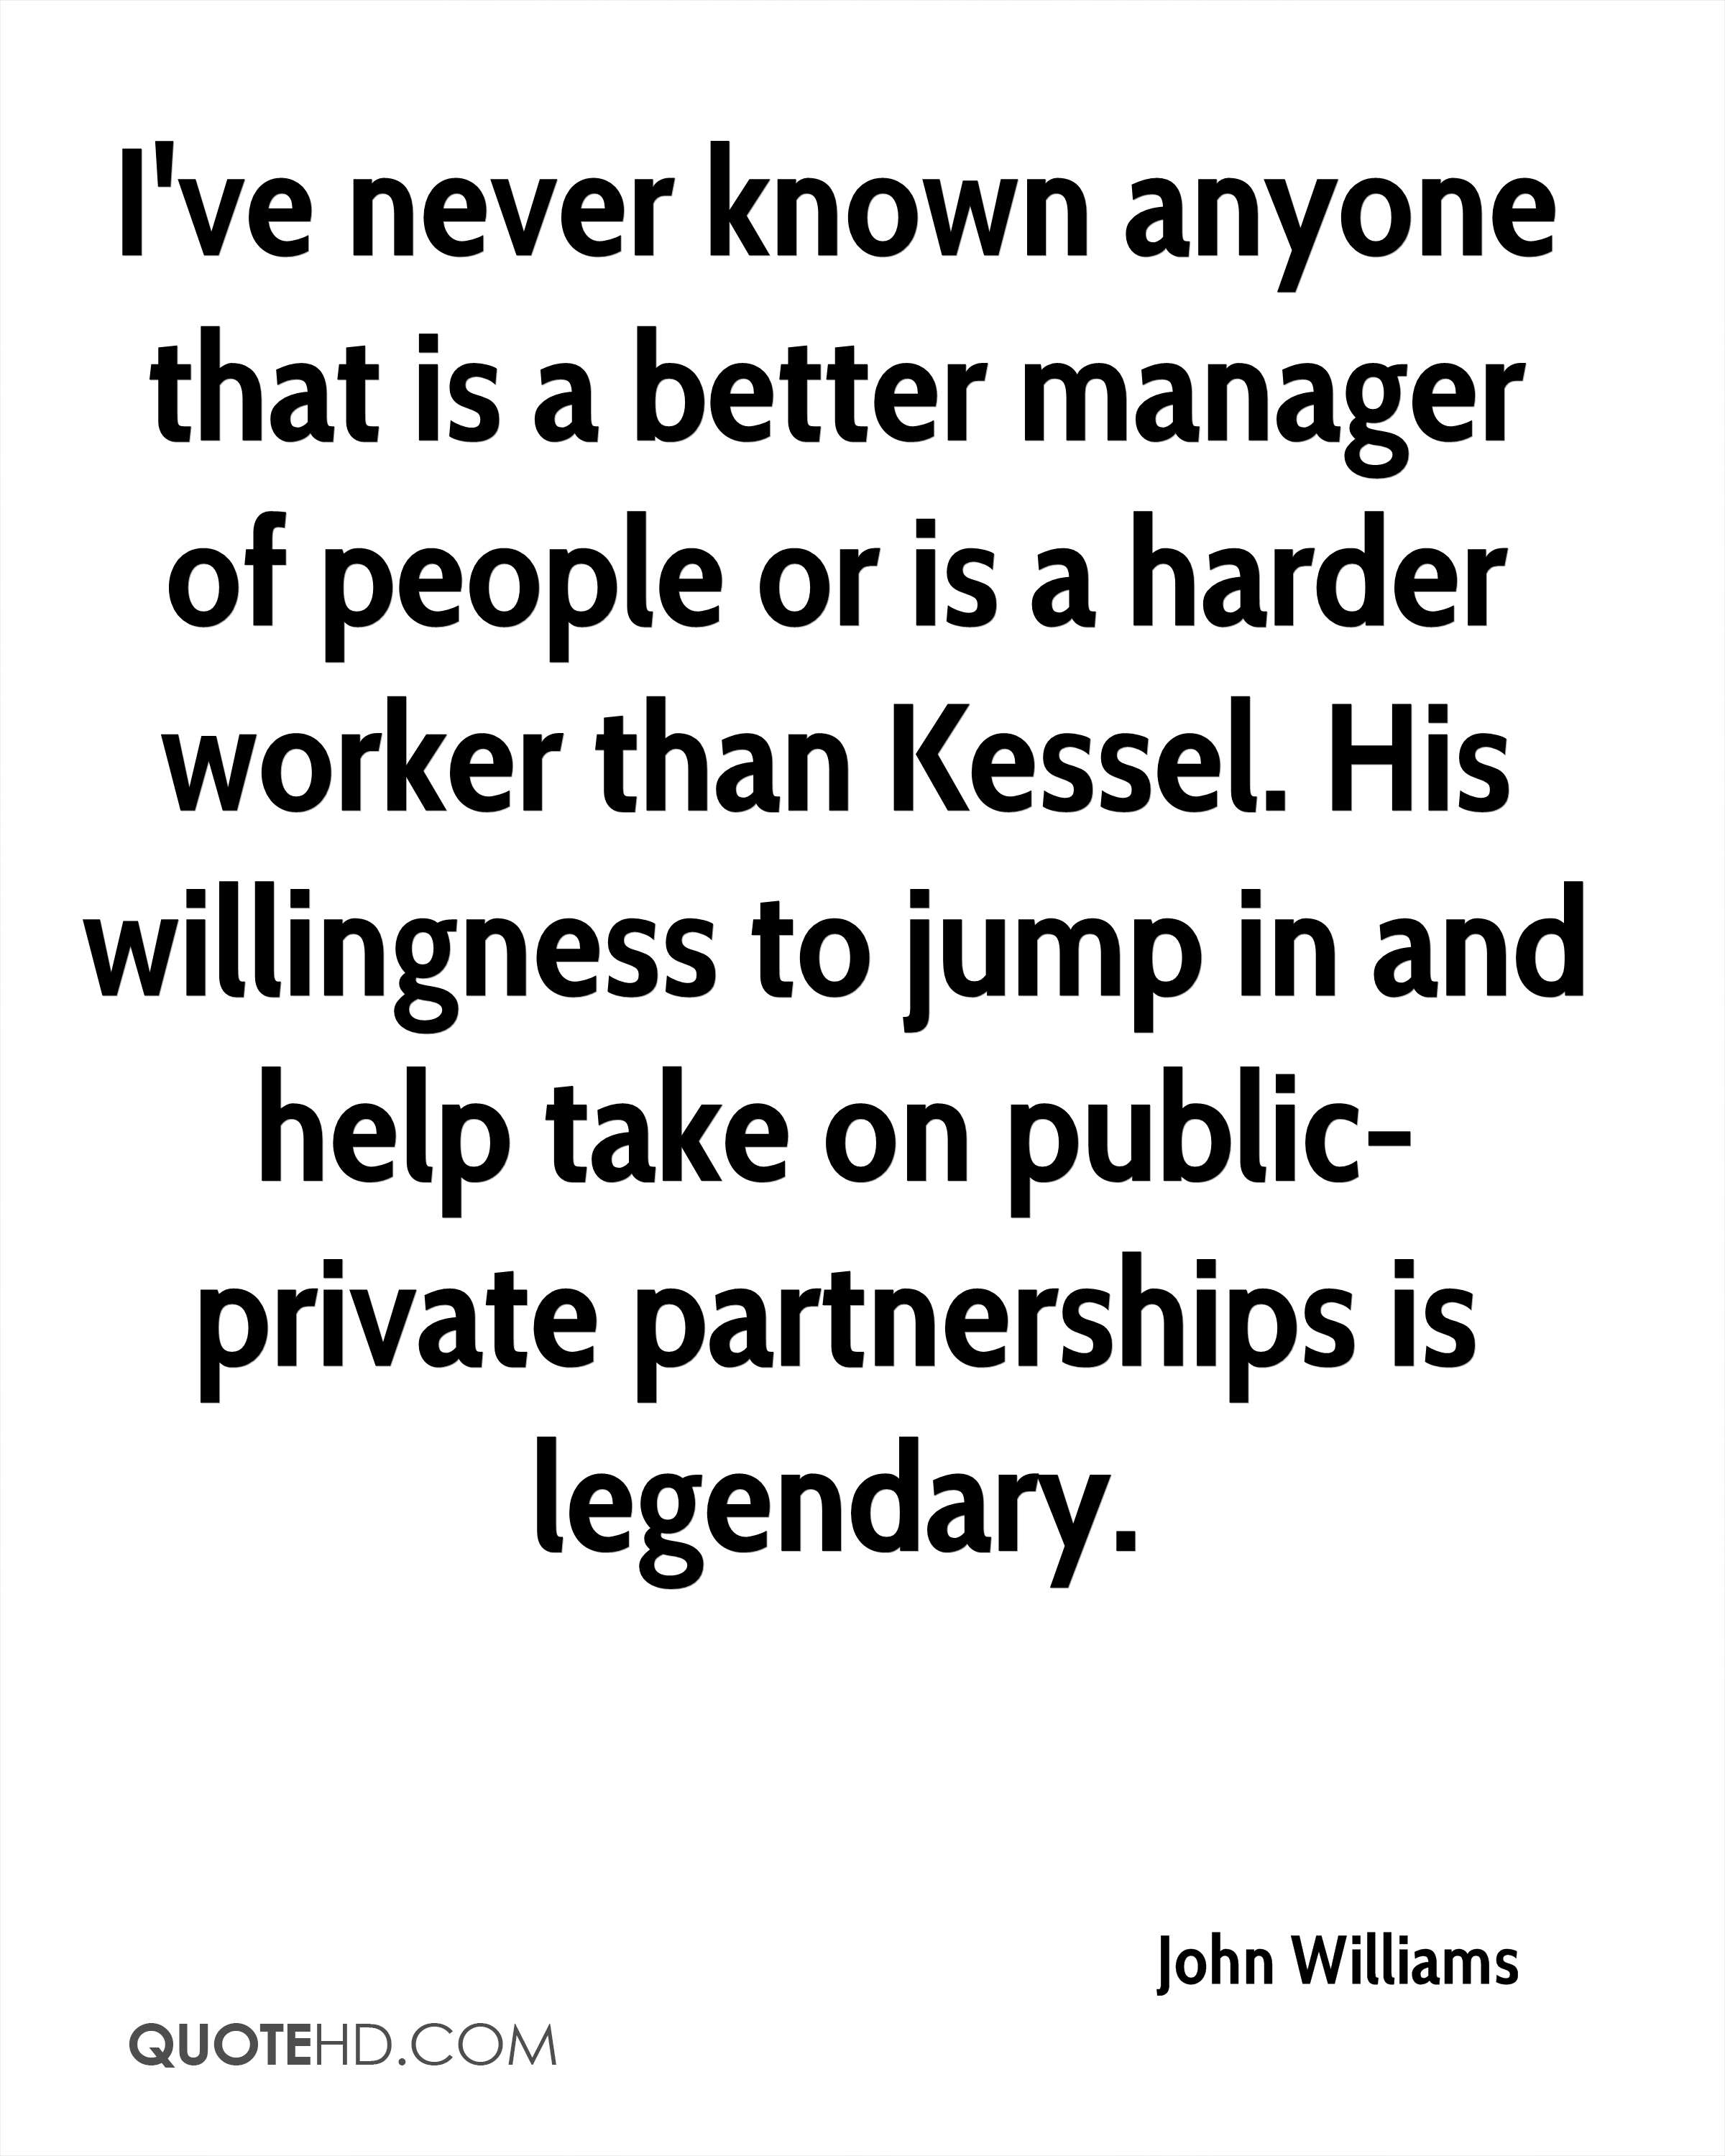 I've never known anyone that is a better manager of people or is a harder worker than Kessel. His willingness to jump in and help take on public-private partnerships is legendary.